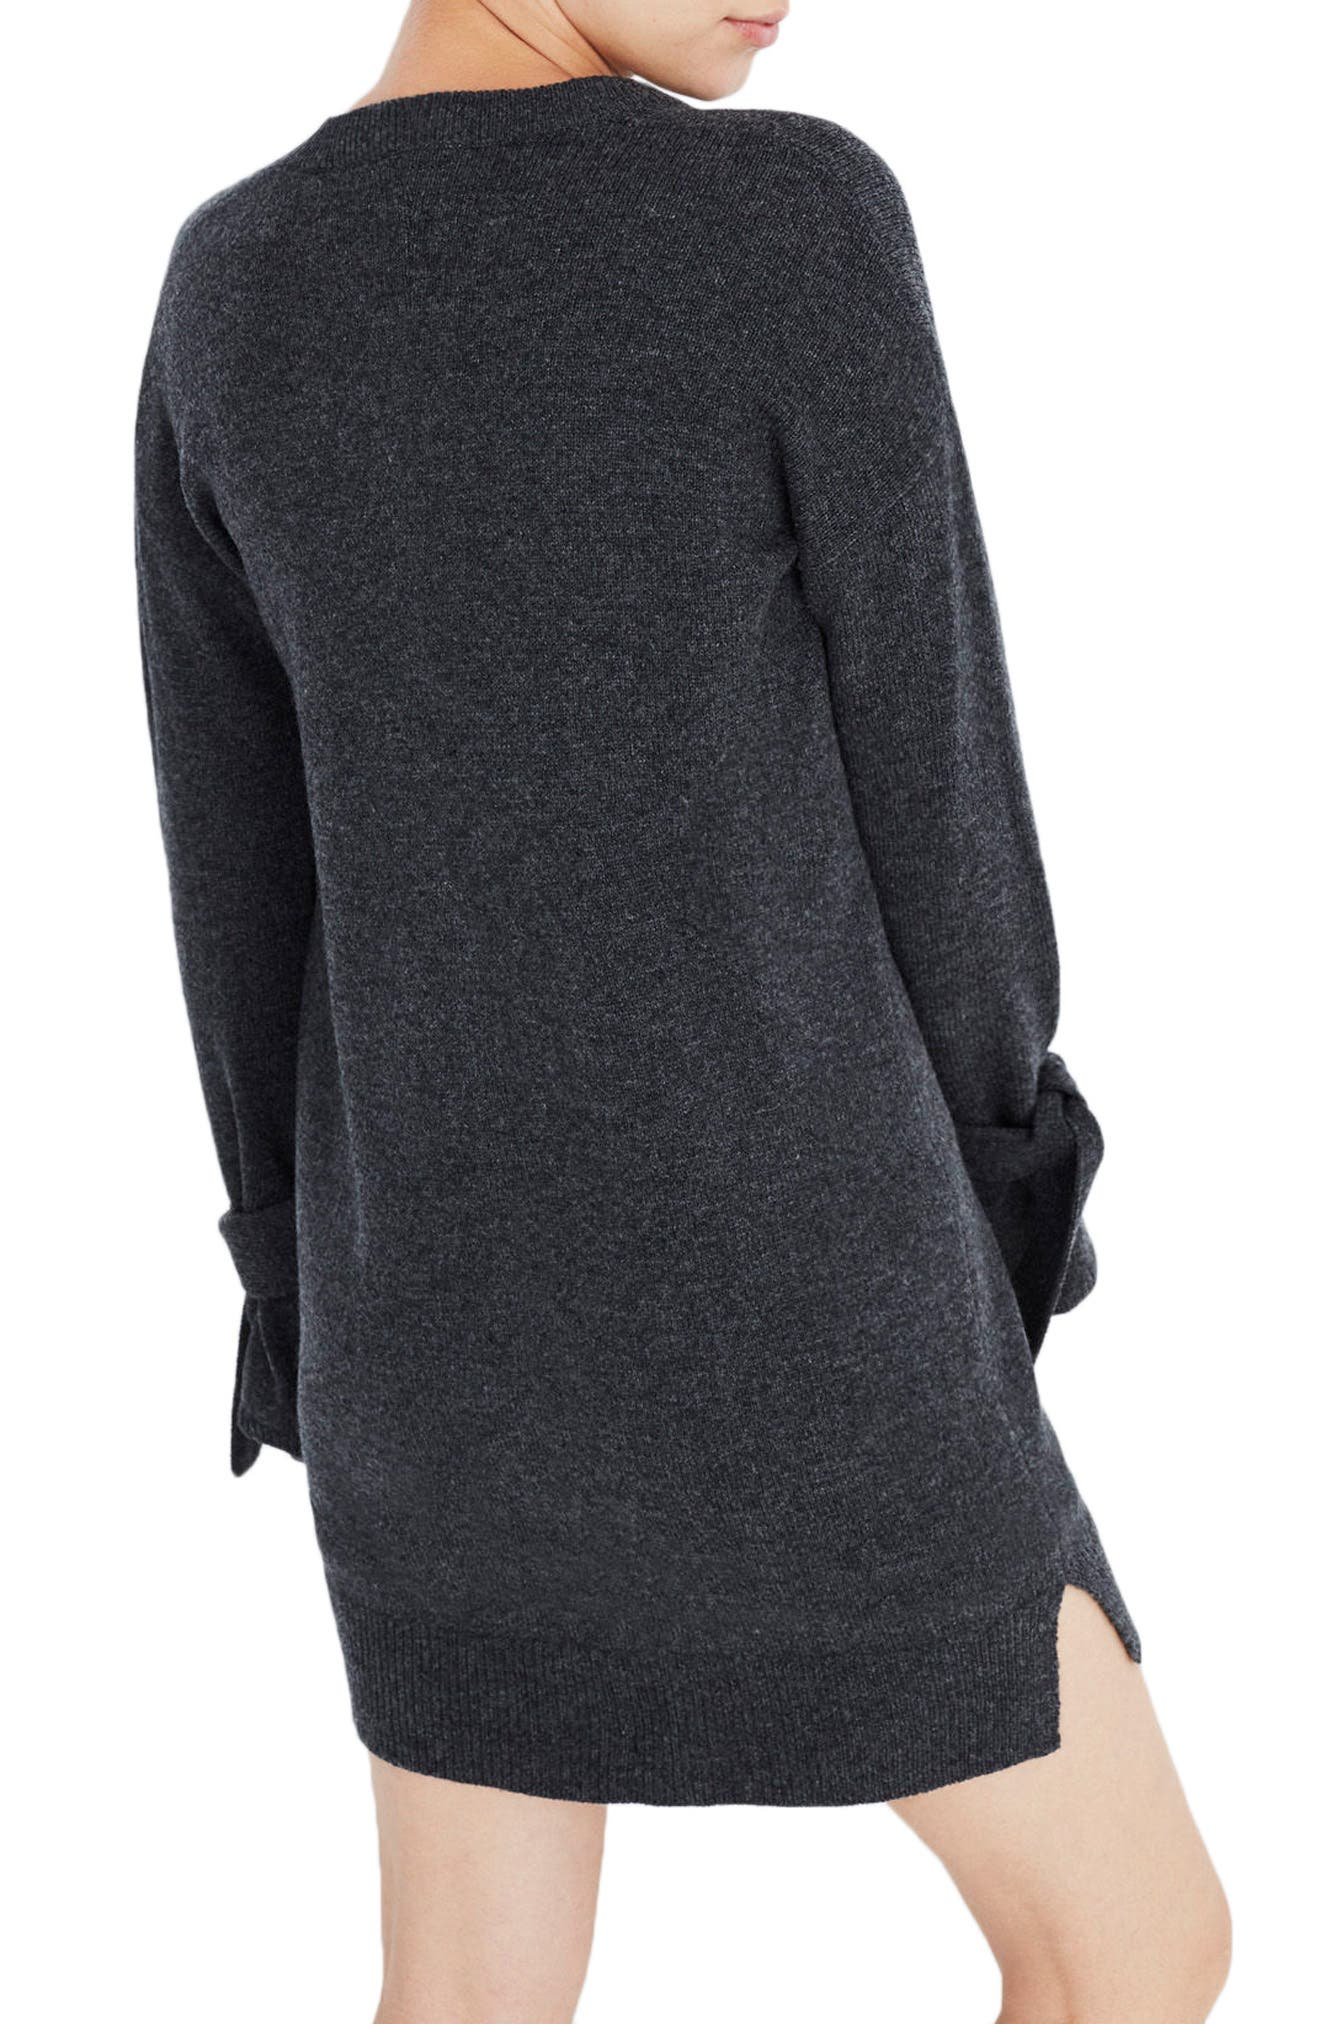 Tie Cuff Sweater Dress,                             Alternate thumbnail 2, color,                             Heather Carbon